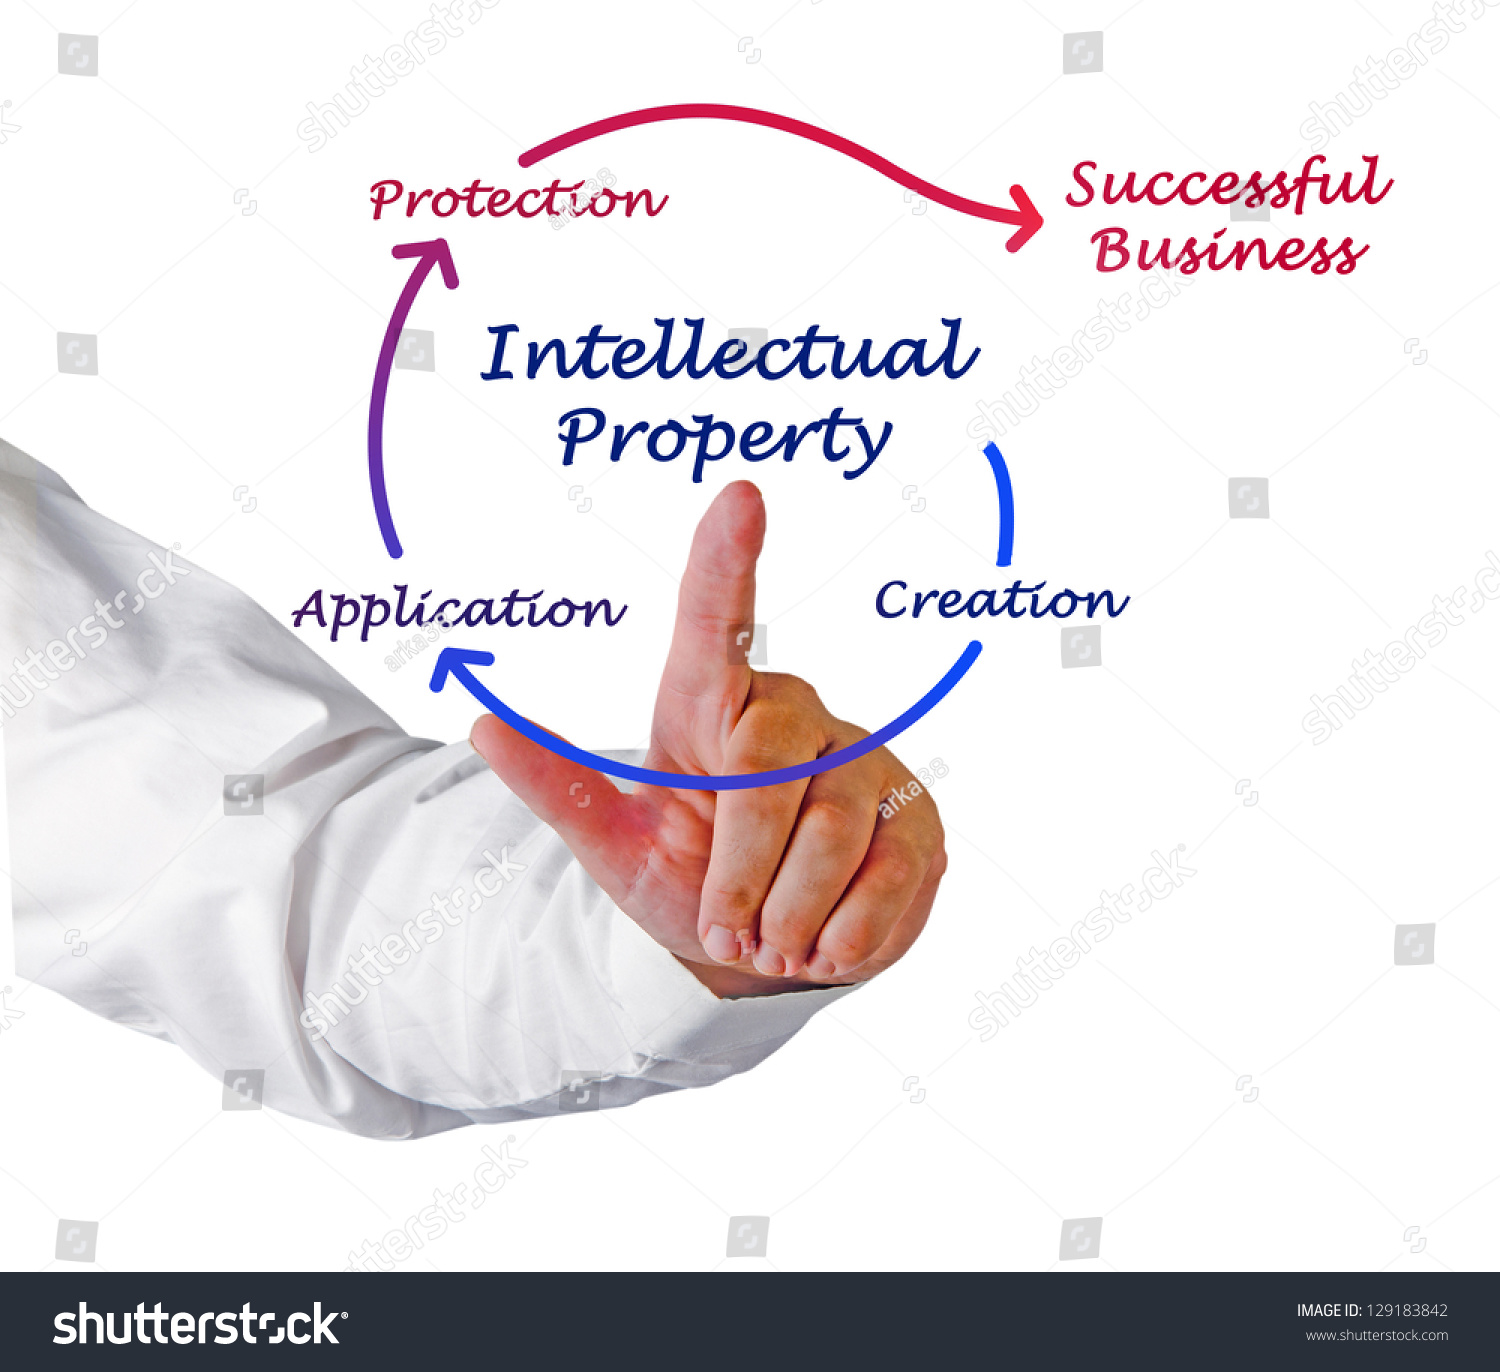 Itellectual Property: Intellectual Property Diagram Stock Photo 129183842